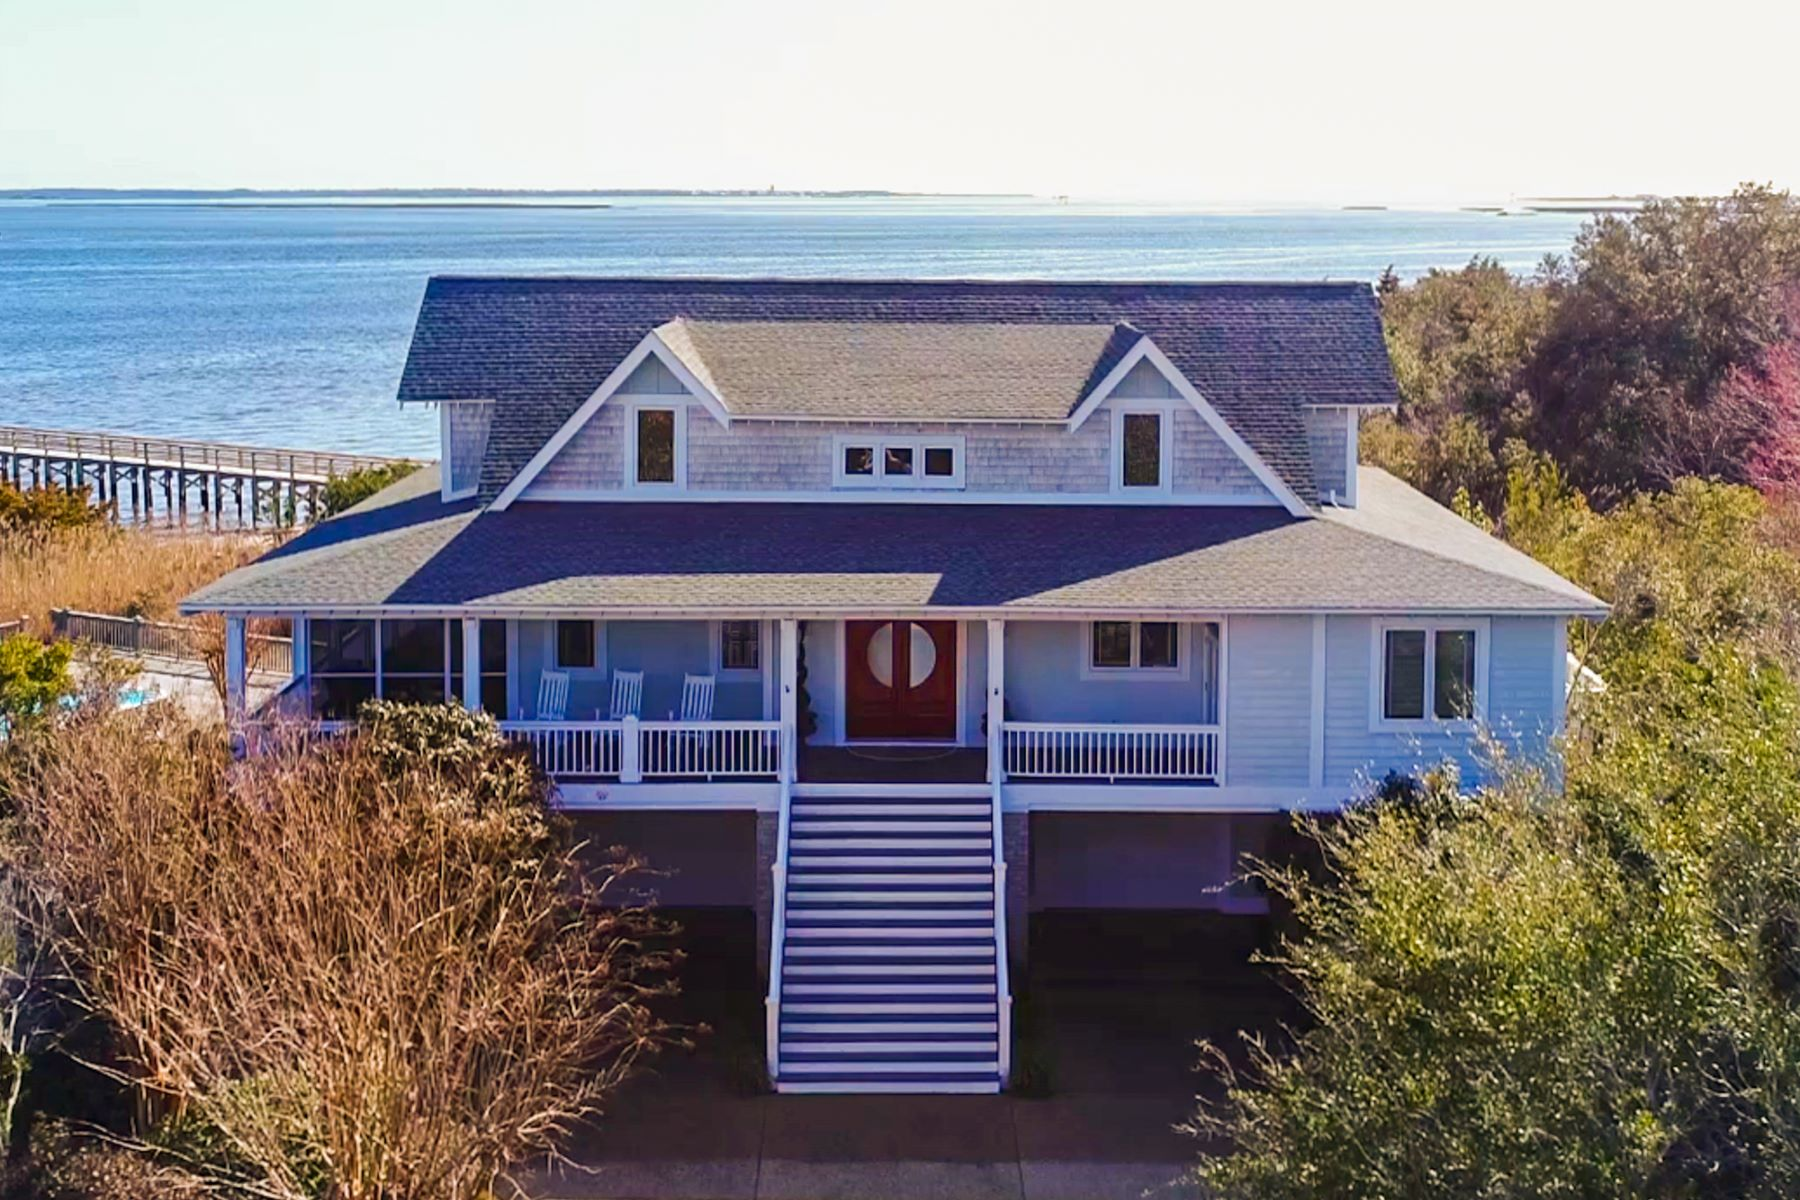 Single Family Home for Sale at Spectacular Waterfront Home with Privacy 6249 Pebble Shore Lane Southport, North Carolina 28461 United States